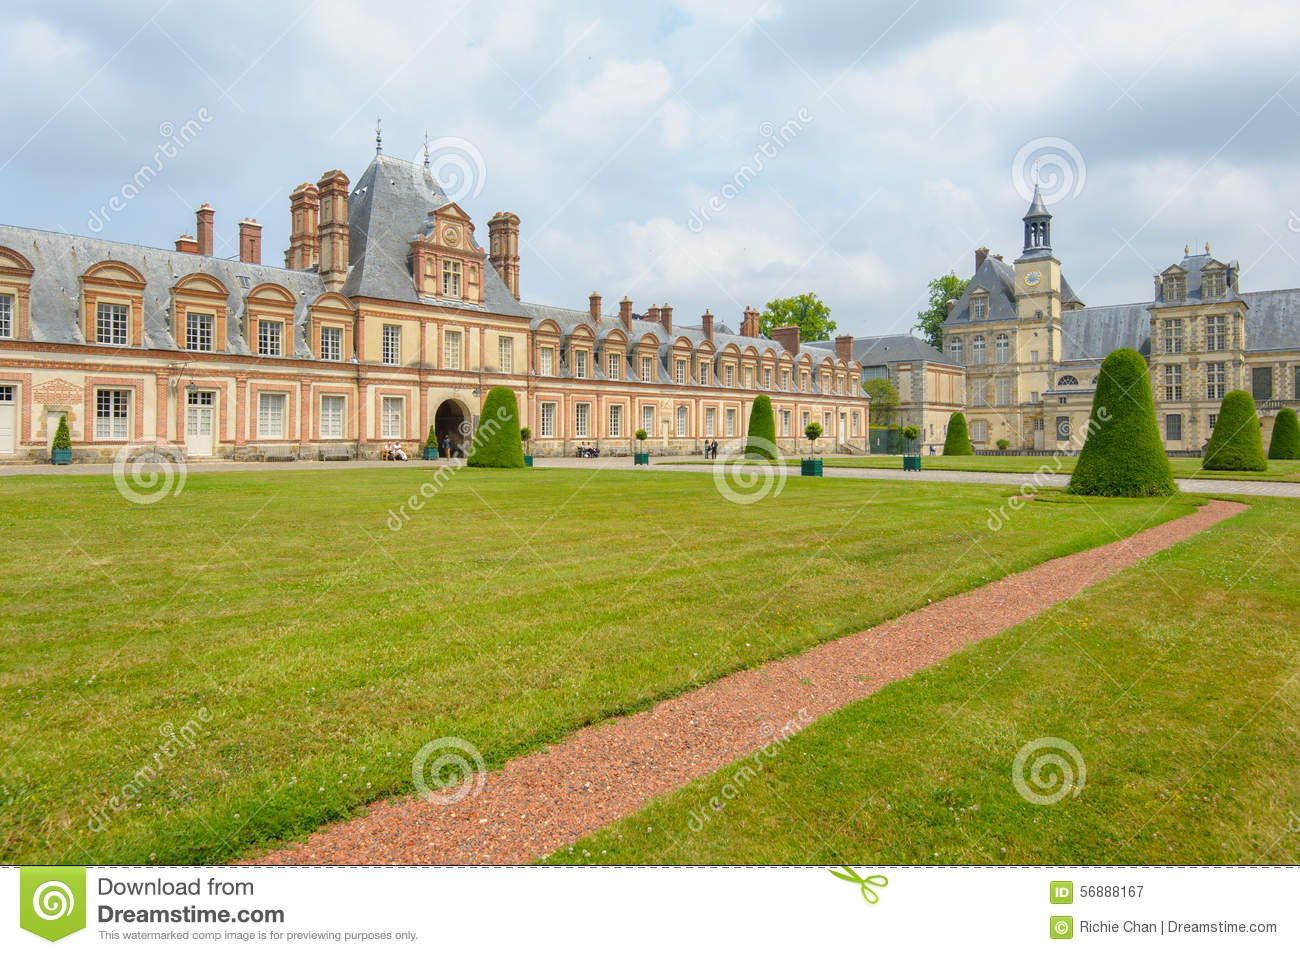 Palace of Fontainebleau in France